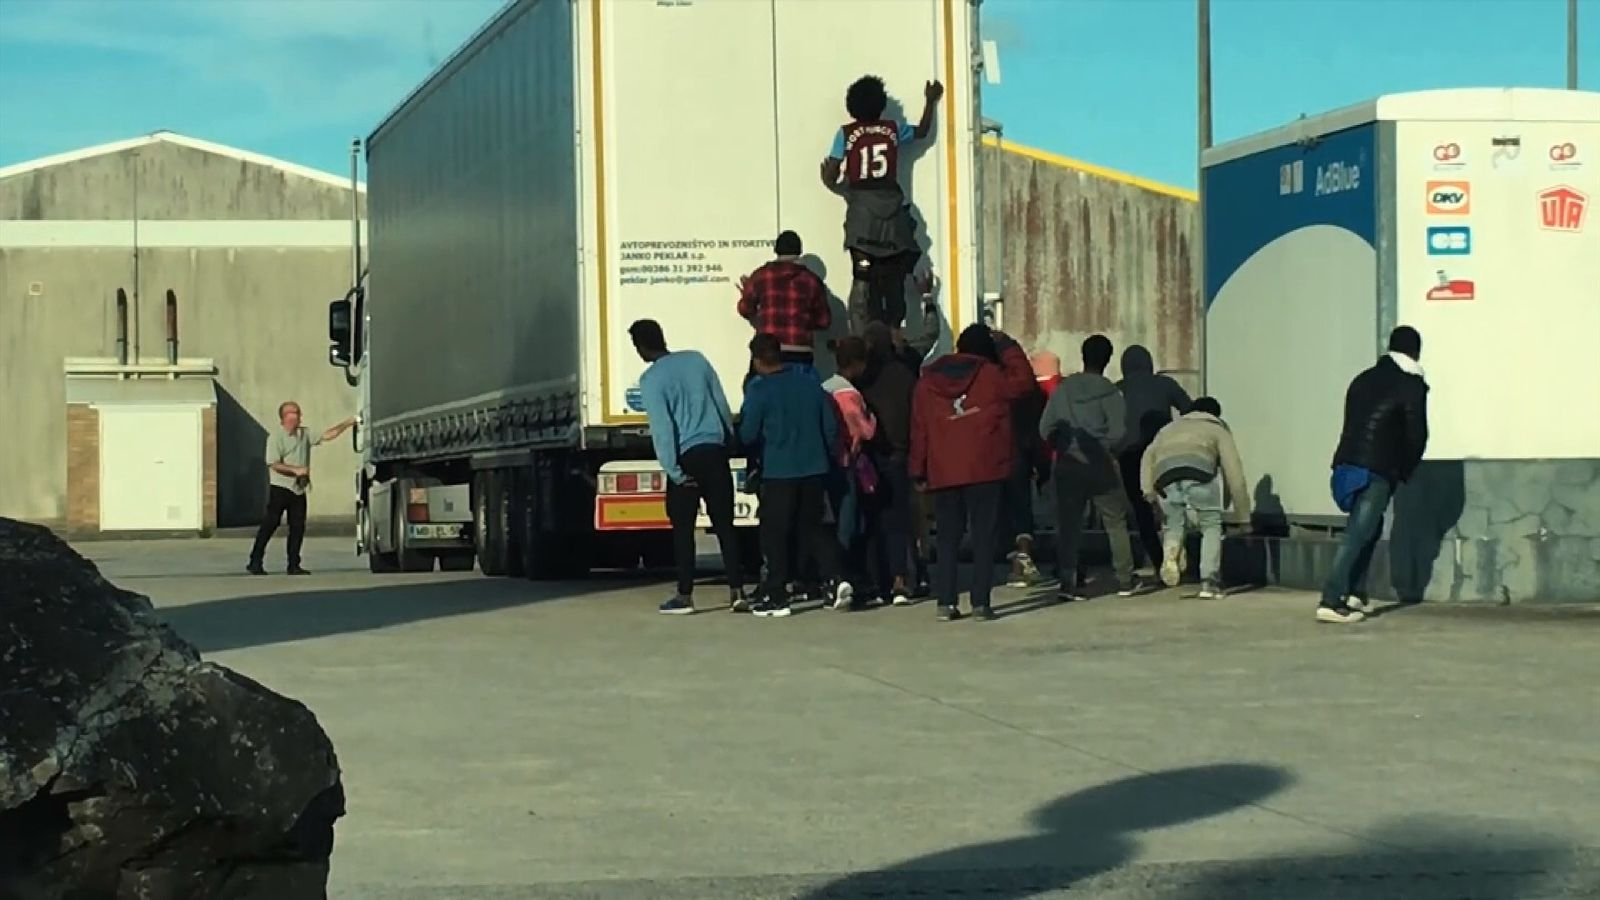 Sky News filmed as a group of migrants tried to break into a truck